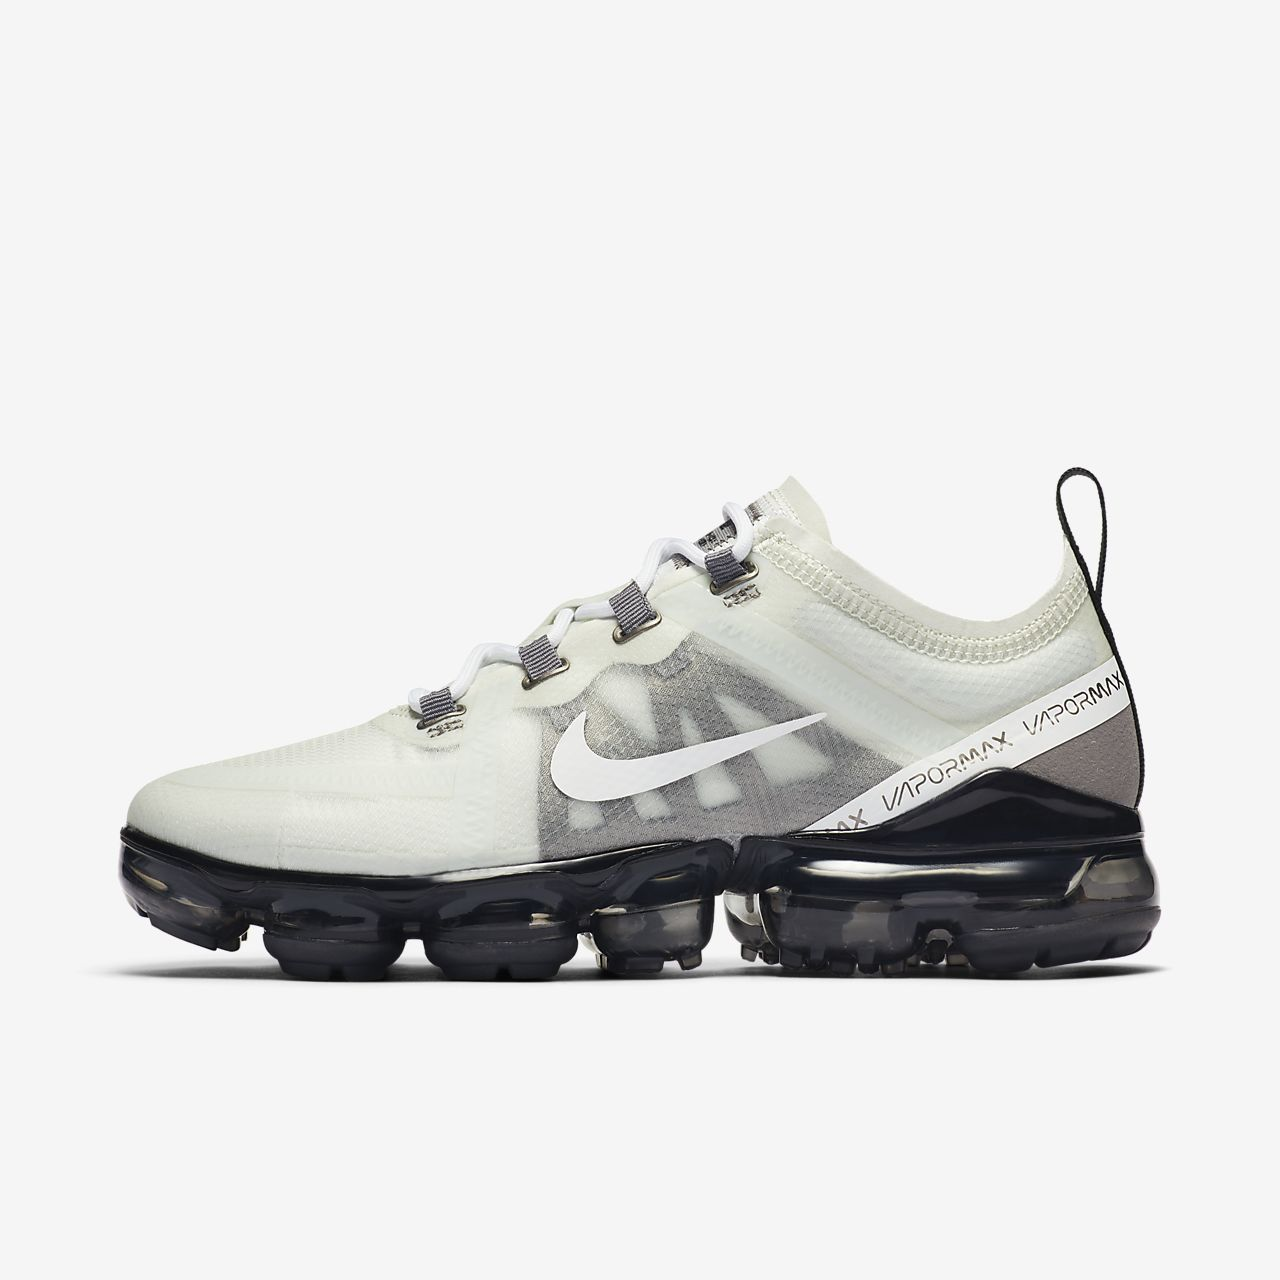 Nike Air Vapormax Men's and Women's Running Shoes For Sale